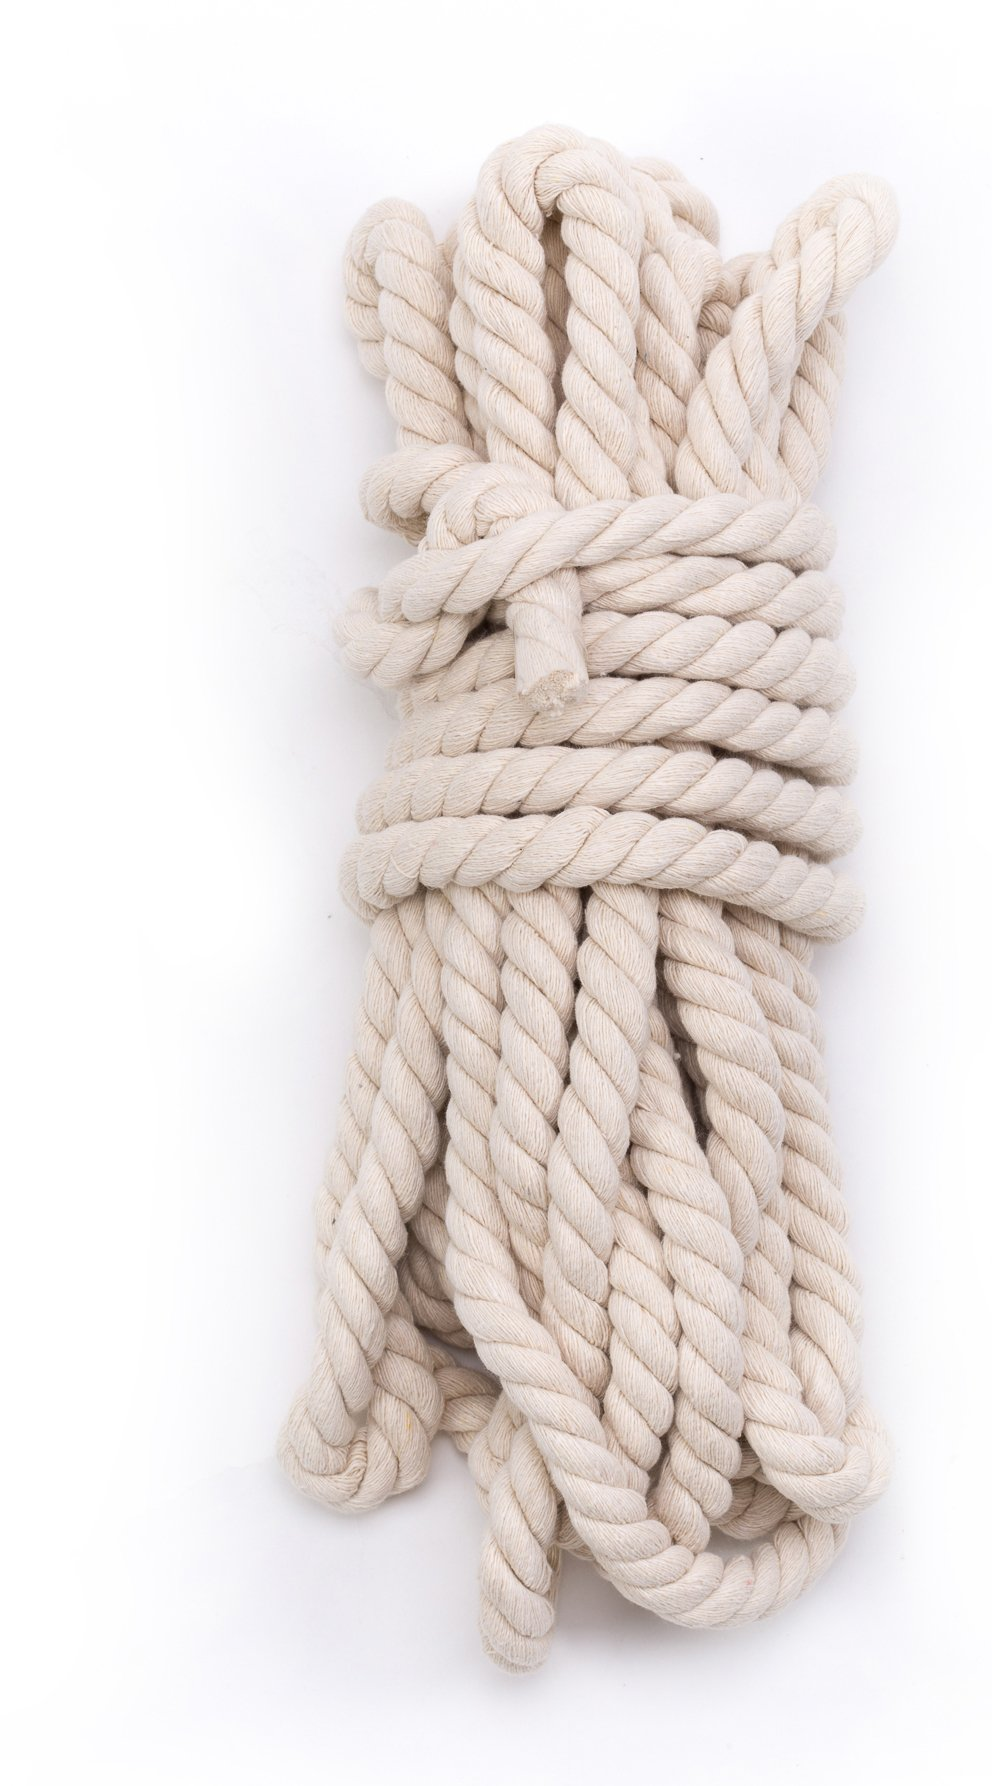 1//6,1//5 5mm 1//8 1//6 1//5 1//8 PYJTRL 100/% Natural Cotton Twisted Rope 1//12 1//5Inch x 165Feet 5mm 1//5Inch x 165Feet